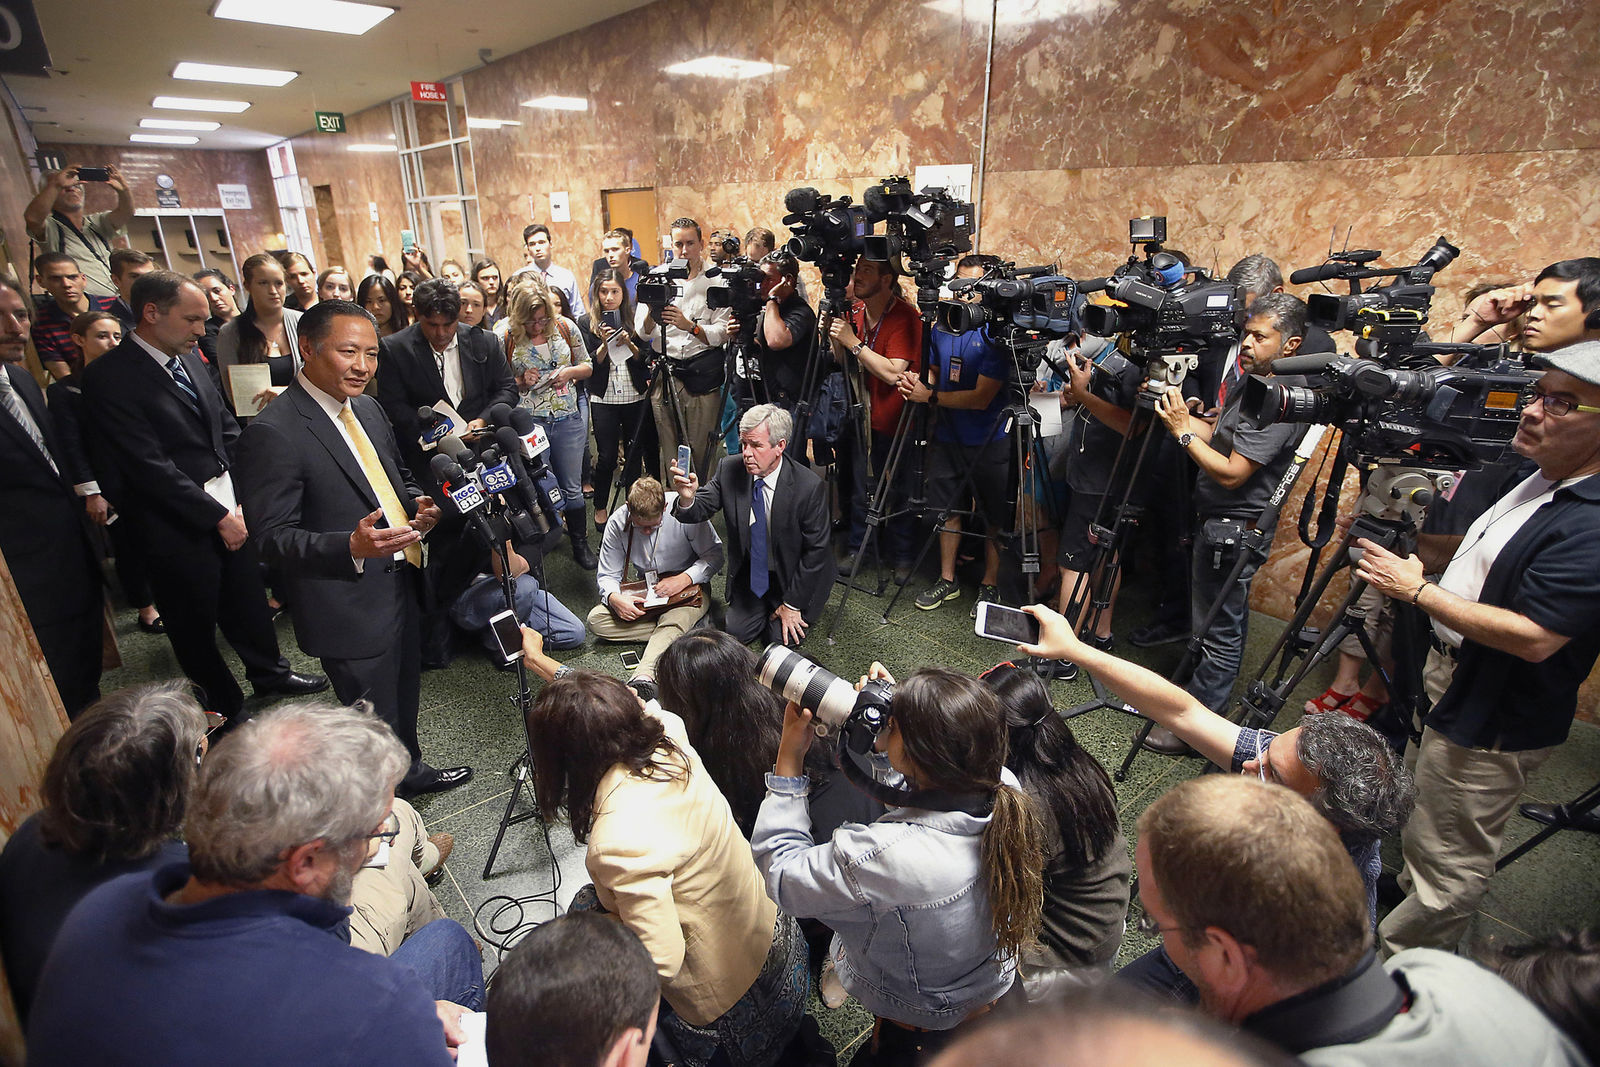 FILE - In this July 7, 2015, file photo, San Francisco Public Defender Jeff Adachi, left, talks to members of the media after Francisco Sanchez' arraignment in San Francisco.{ } (AP Photo/Tony Avelar, File)